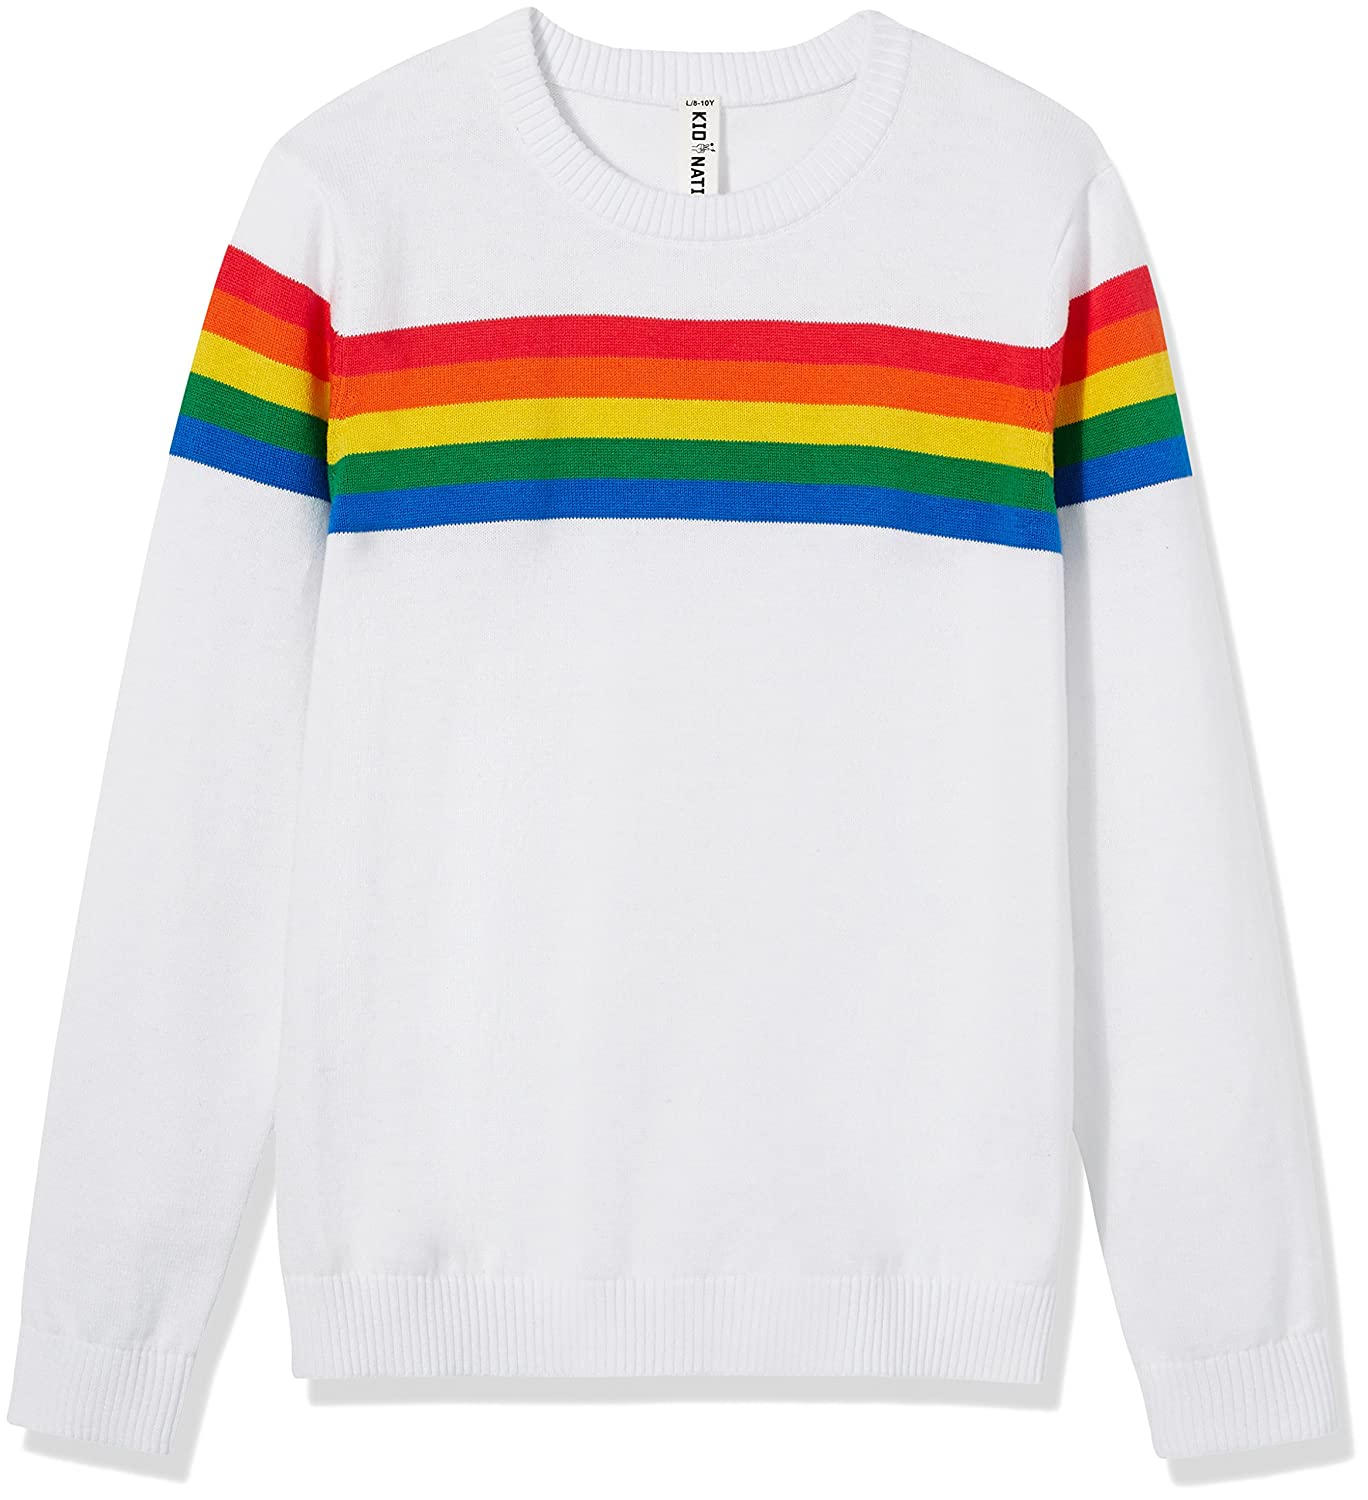 ba6c3ef7458f0 Kid Nation Kids' Sweater Long Sleeve Rainbow Stripe Pullover Round Neck  Cotton Knit for Boys and Girls School Uniform